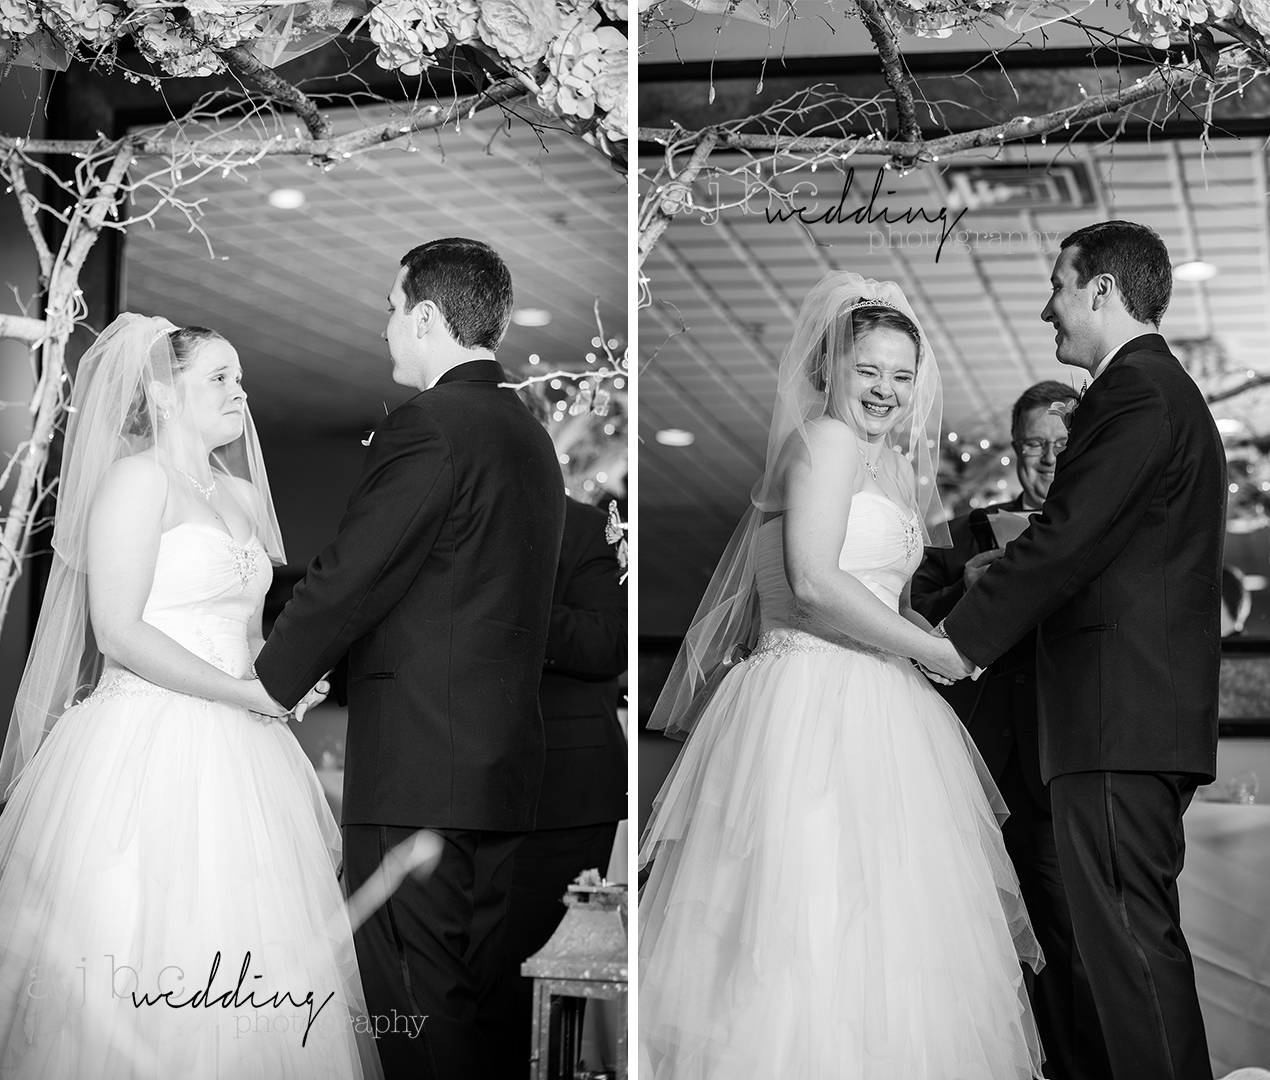 ajbcphotography-port-huron-michigan-wedding-photographer-love-bride-groom-family-michigan-wedding-photographer-wadhams-michigan-wedding.jpg